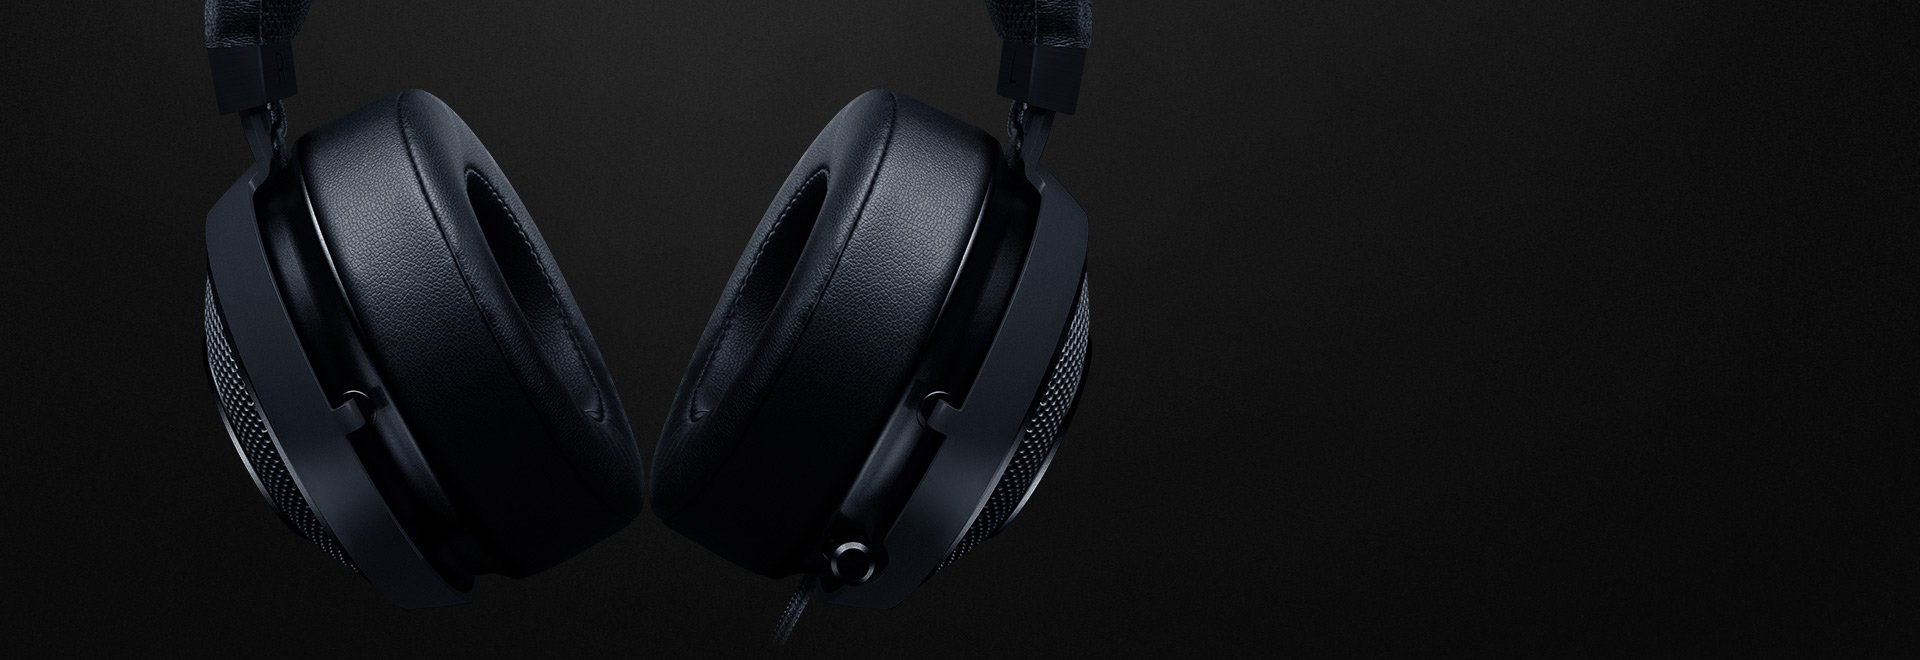 Razer Kraken 71 V2 Oval Ear Gaming Headset Mercury Edition Rz04 Pro White Made Of Bauxite Aluminum The Entire Frame Is Lightweight Flexible And Incredibly Durable It Has Been Tested Extensively To